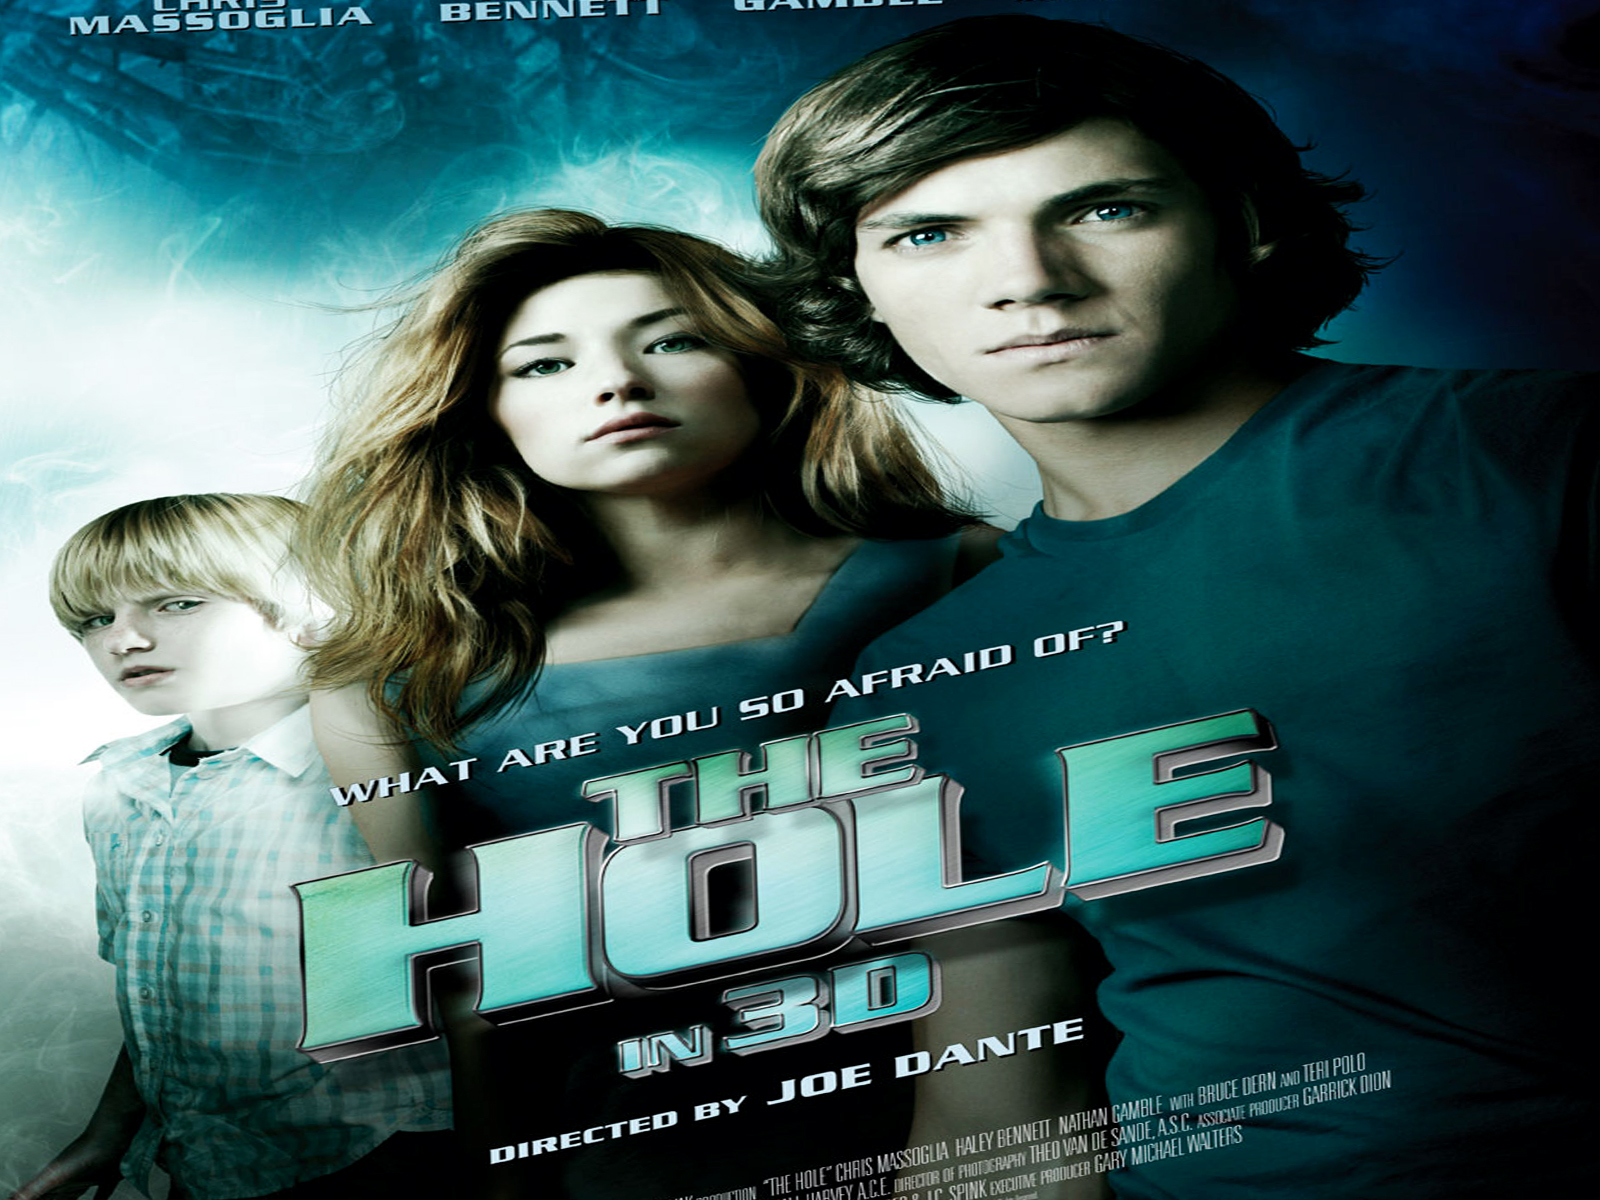 http://4.bp.blogspot.com/-tFIvEFPdH8w/UEG5OeB05wI/AAAAAAAAELc/9NcZqzVP5yY/s1600/The_Hole_2012_Movie_Poster_Desktop_Wallpaper-HidefWall.Blogspot.Com.jpg